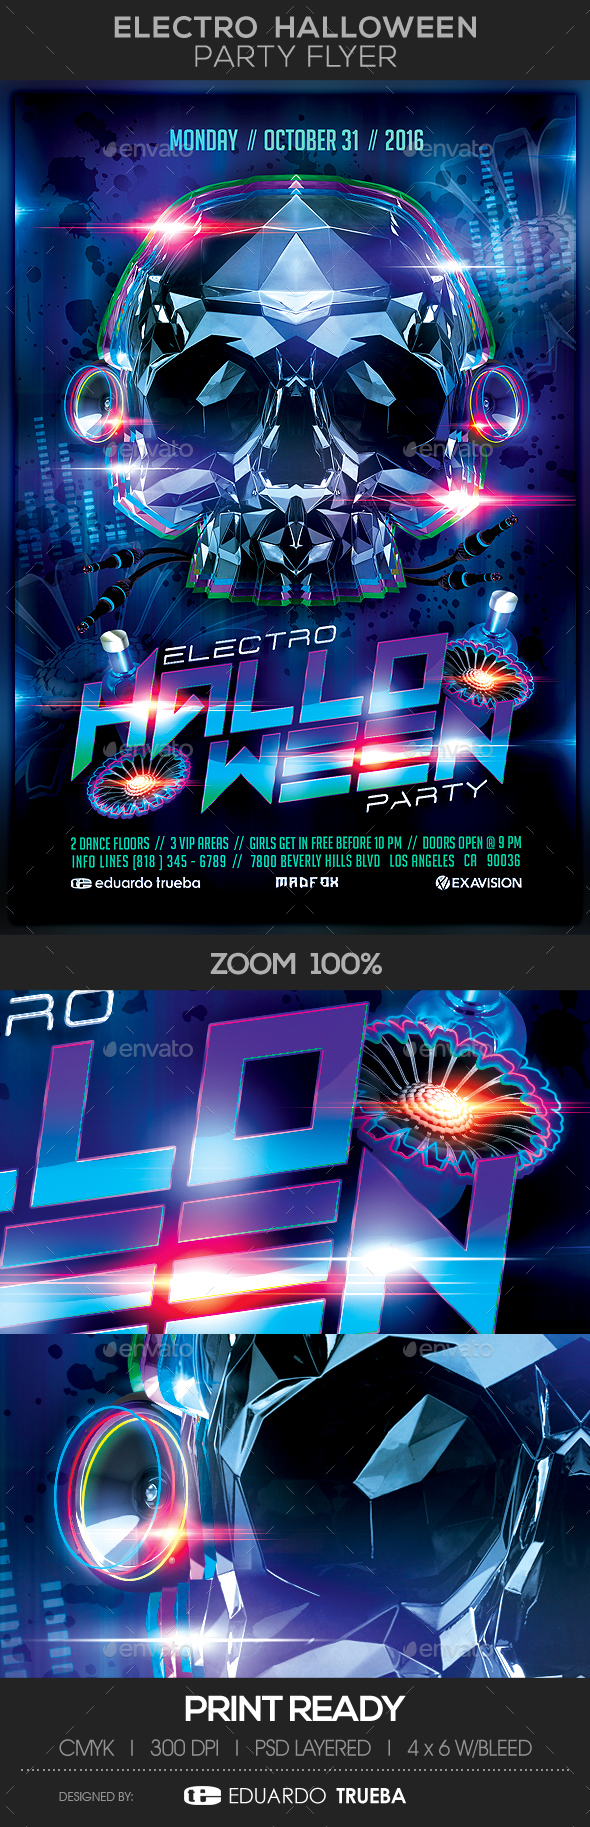 Electro Halloween Party Flyer